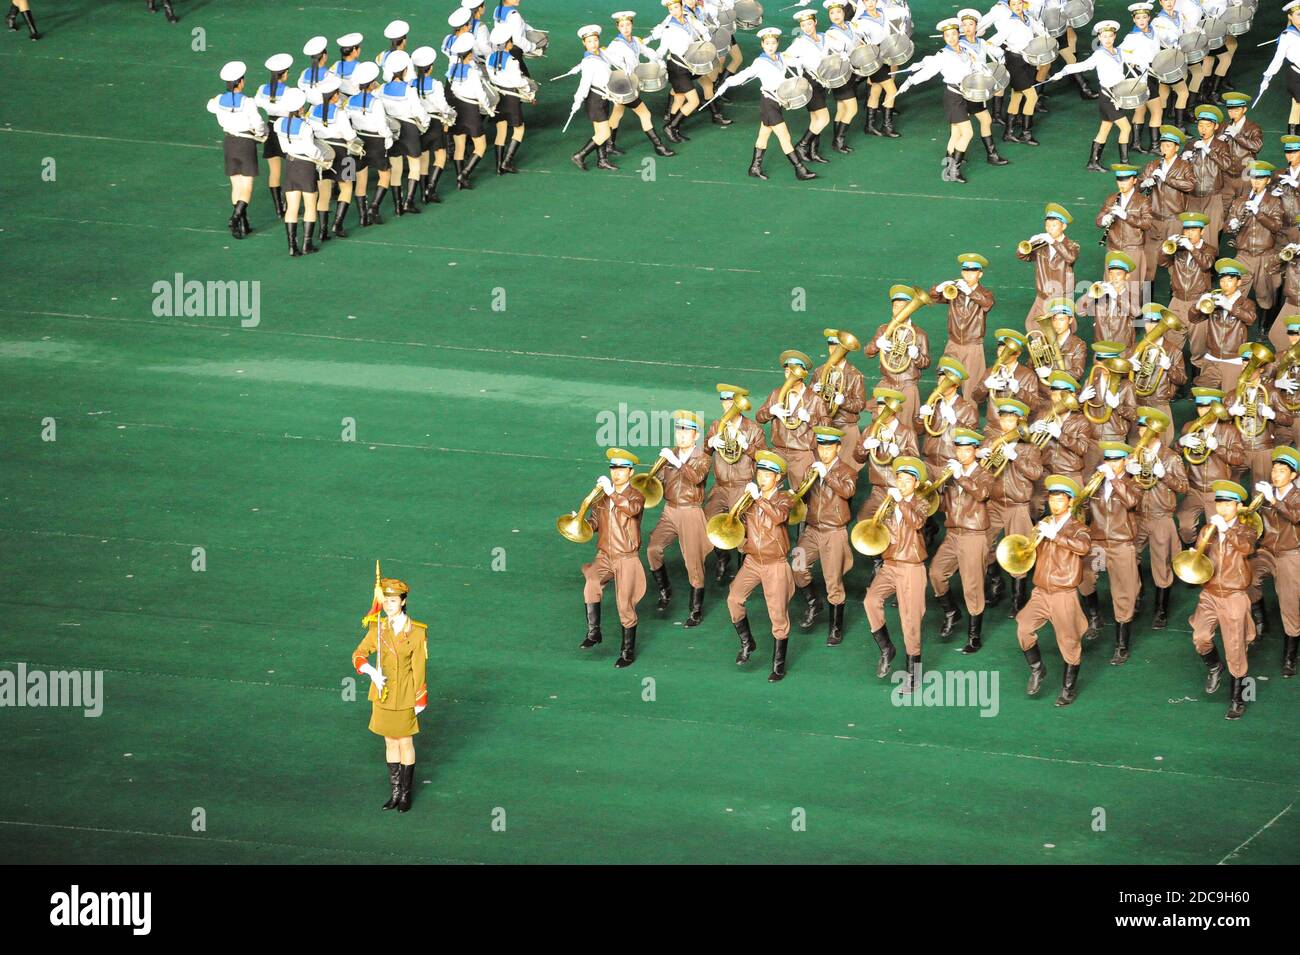 08.08.2012, Pyongyang, , North Korea - A military band will play brass music during the Arirang Festival and the mass games in the North Korean capita Stock Photo